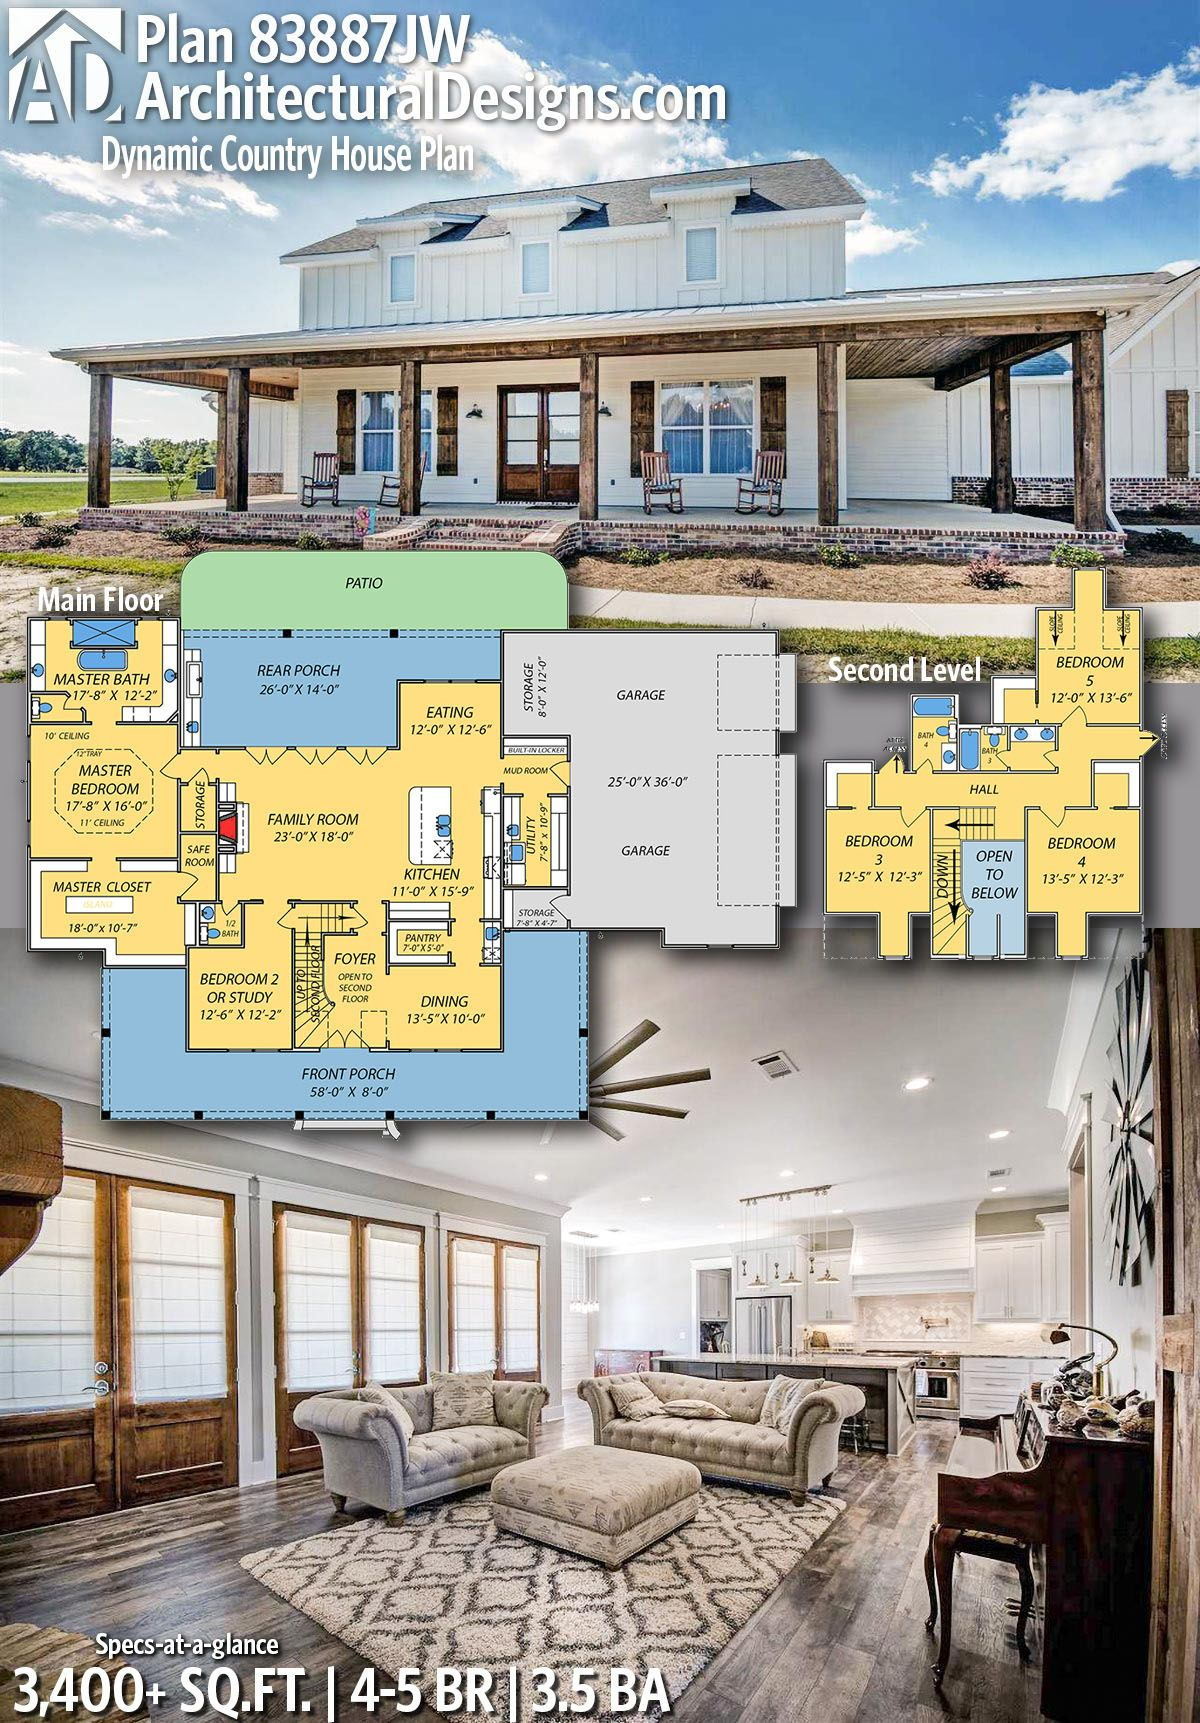 House Plans with A Safe Room Awesome Plan Jw Dynamic Country House Plan with Safe Room In